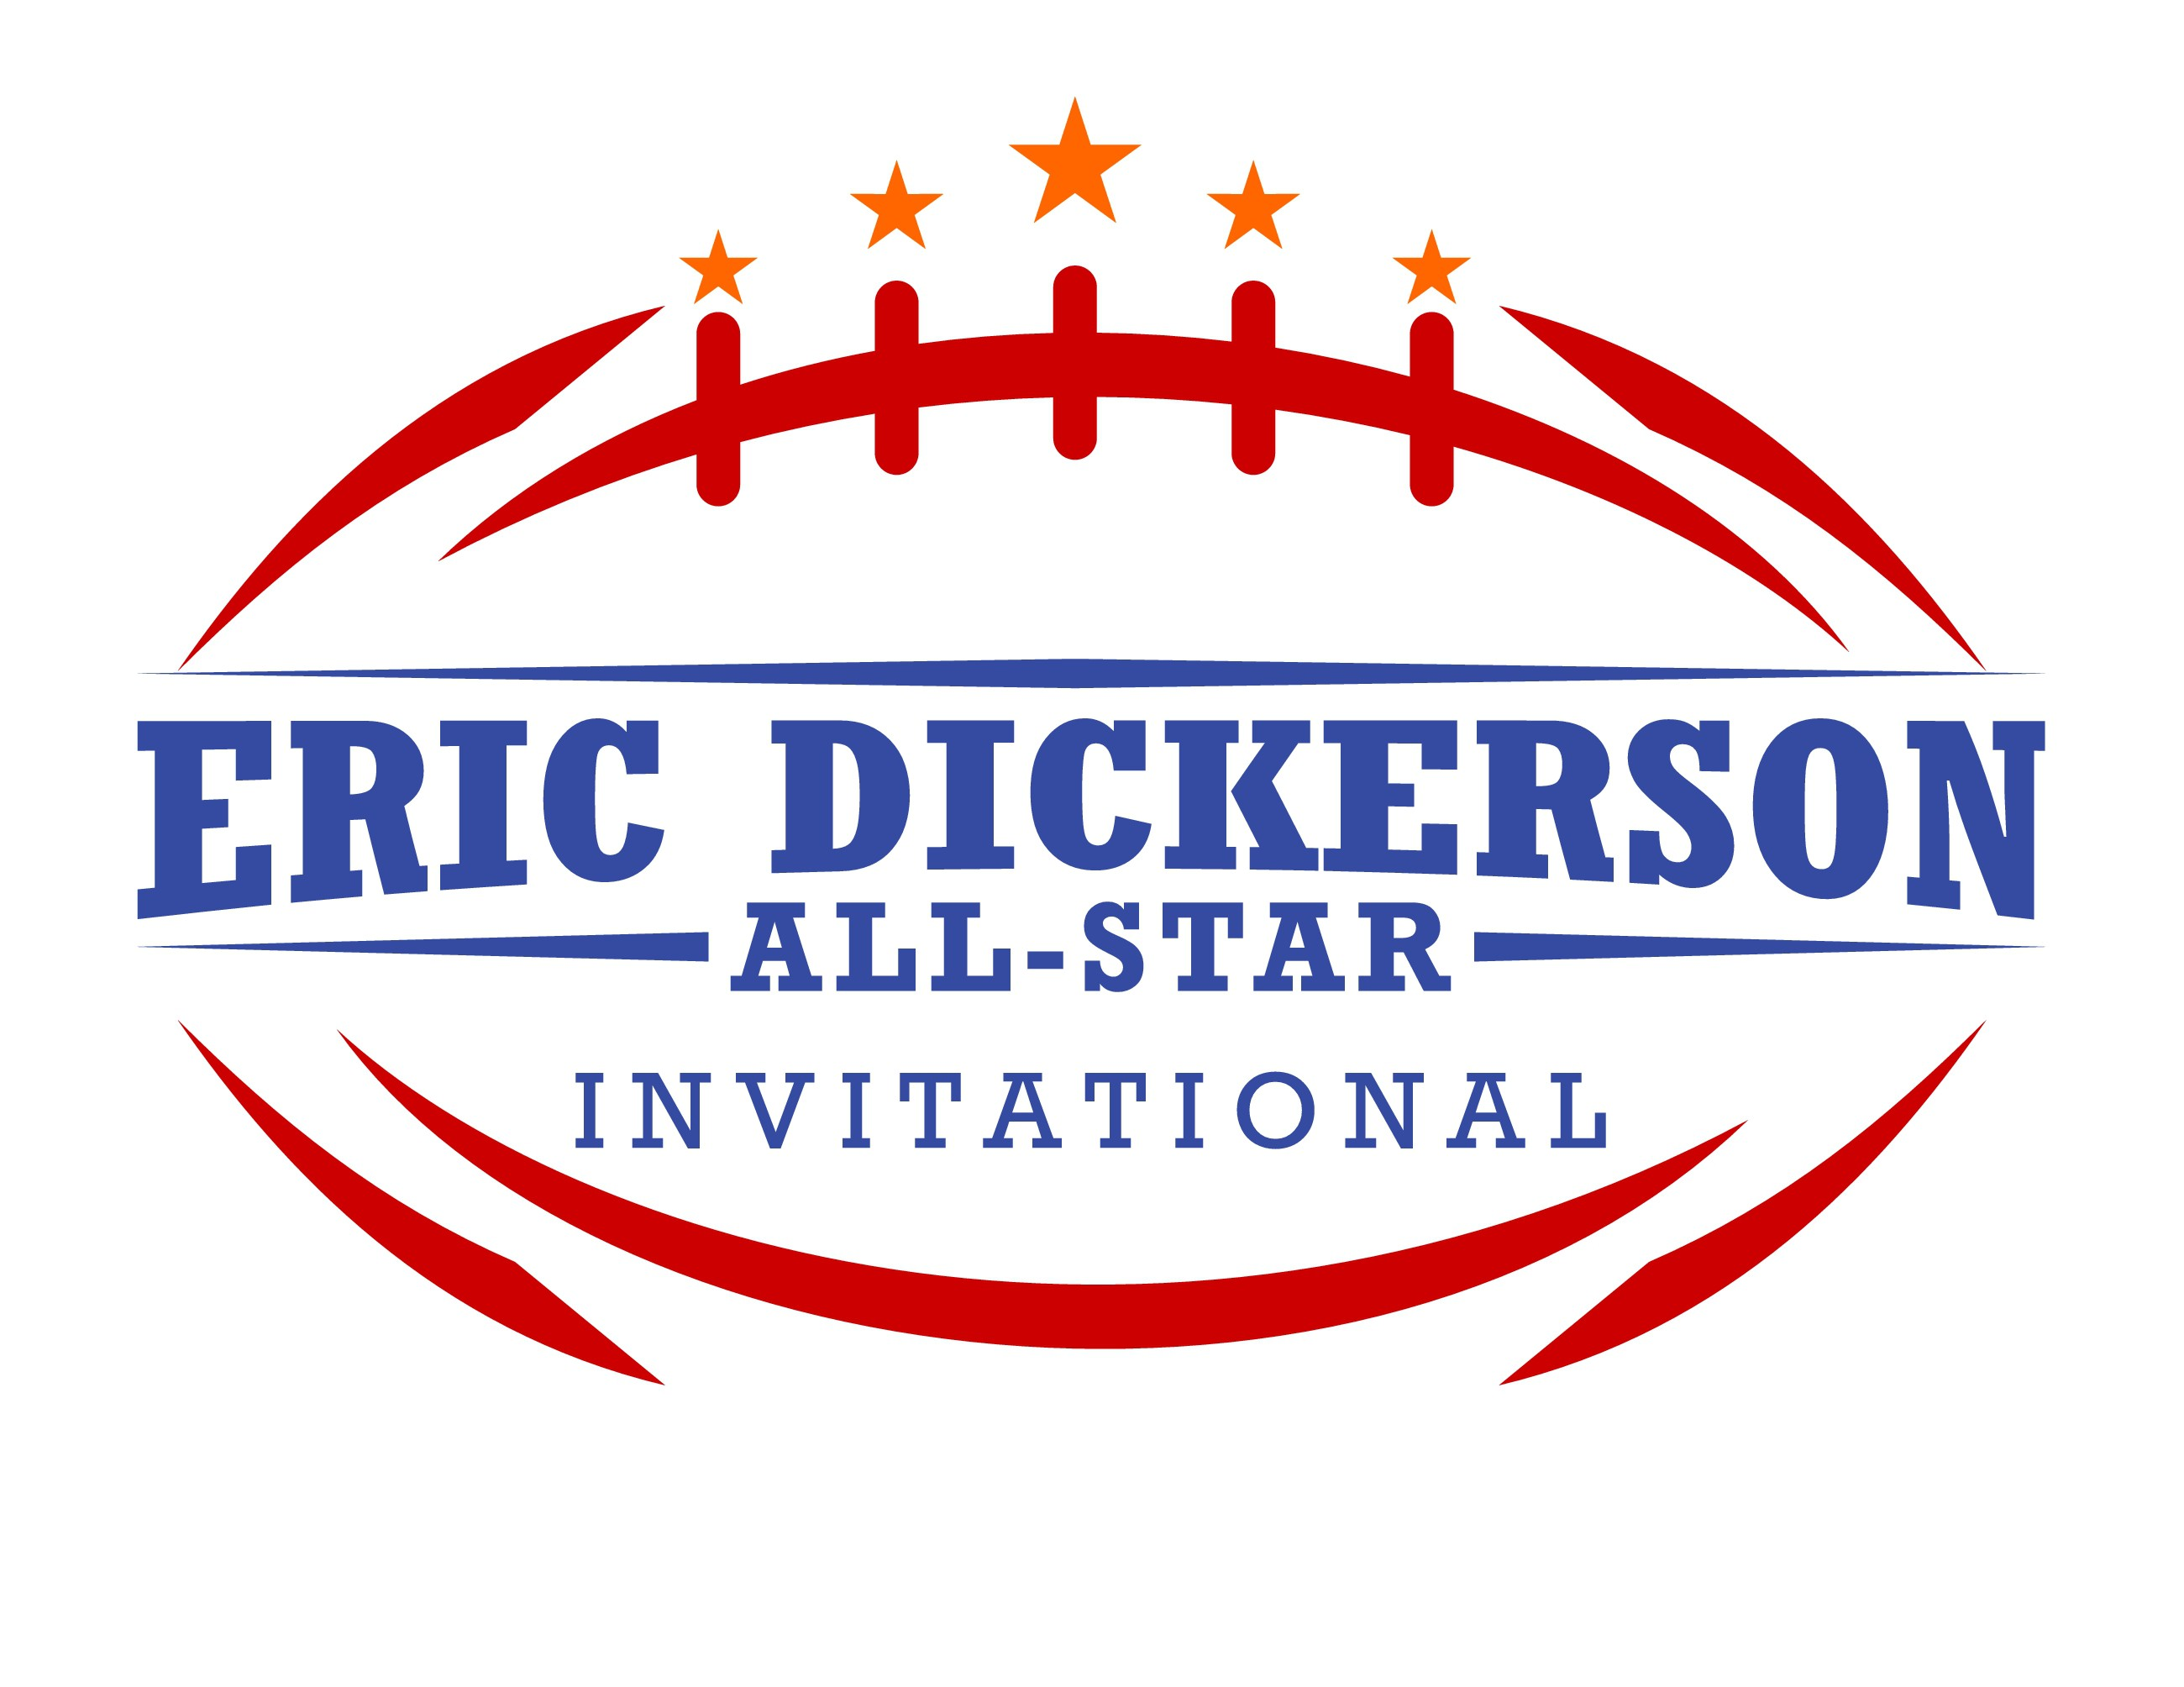 Eric Dickerson All-Star Invitational